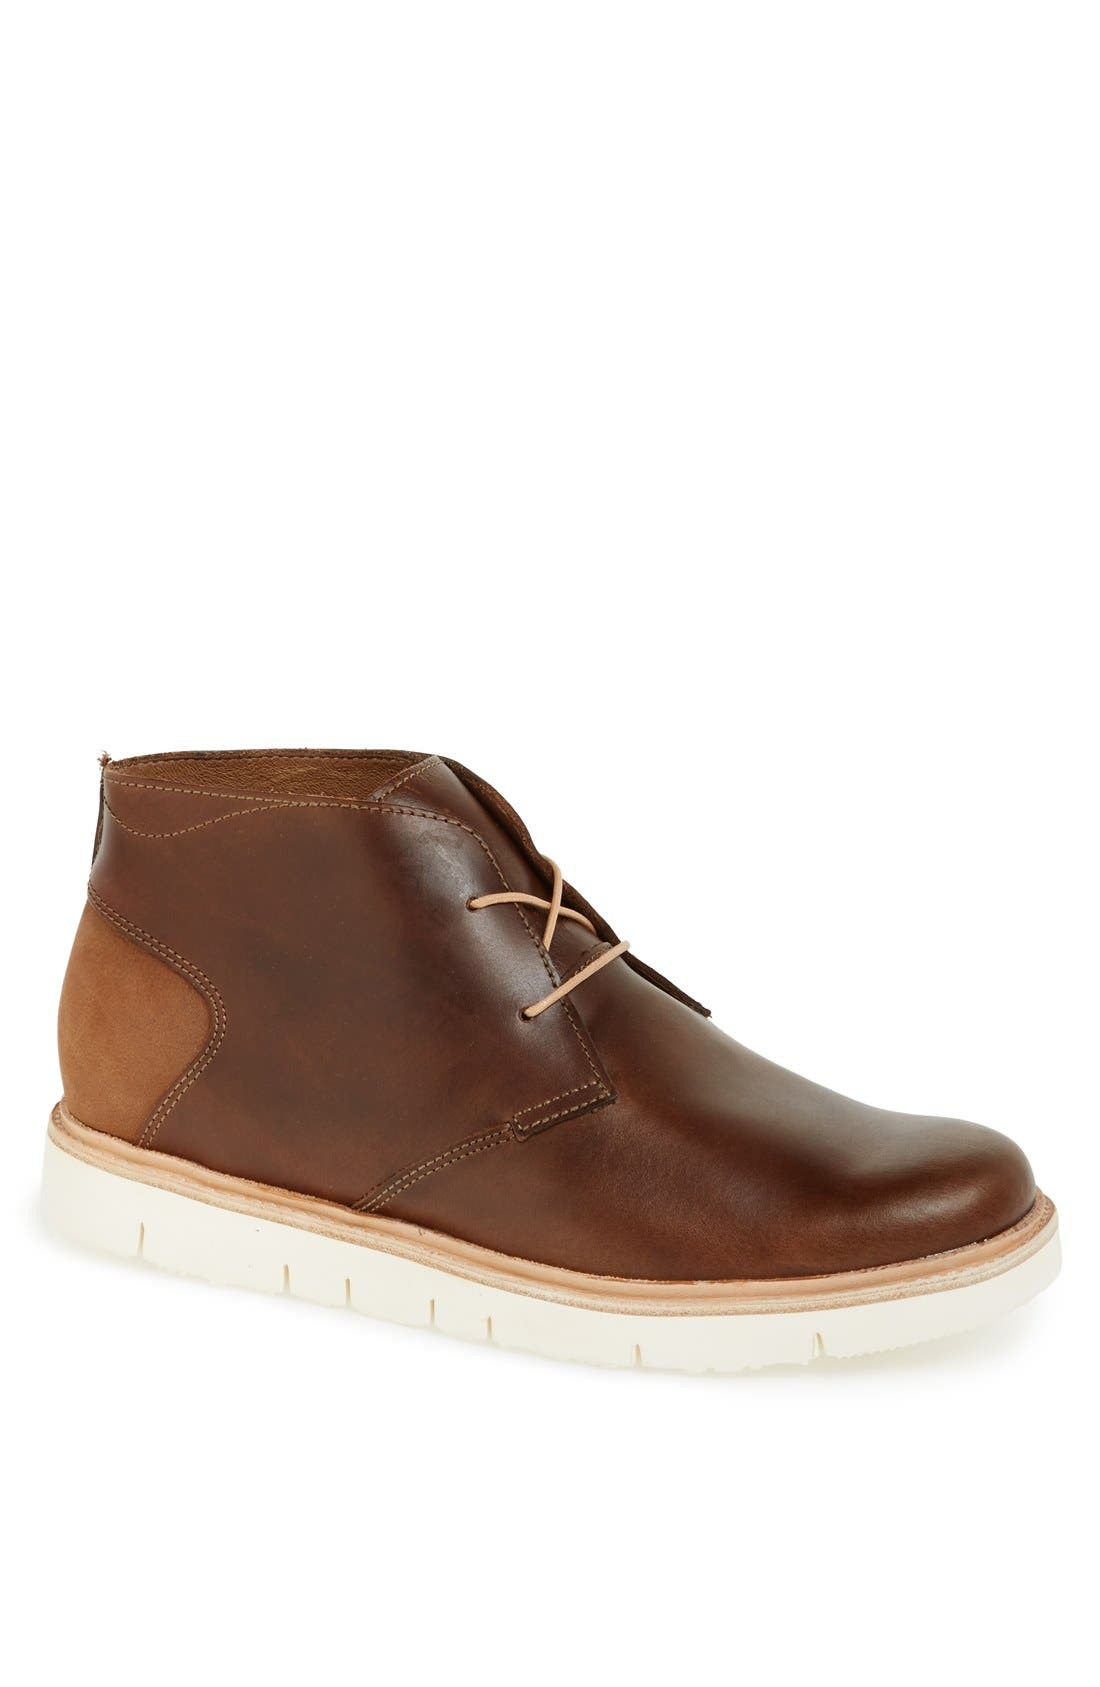 Alternate Image 1 Selected - Tsubo 'Halian' Chukka Boot